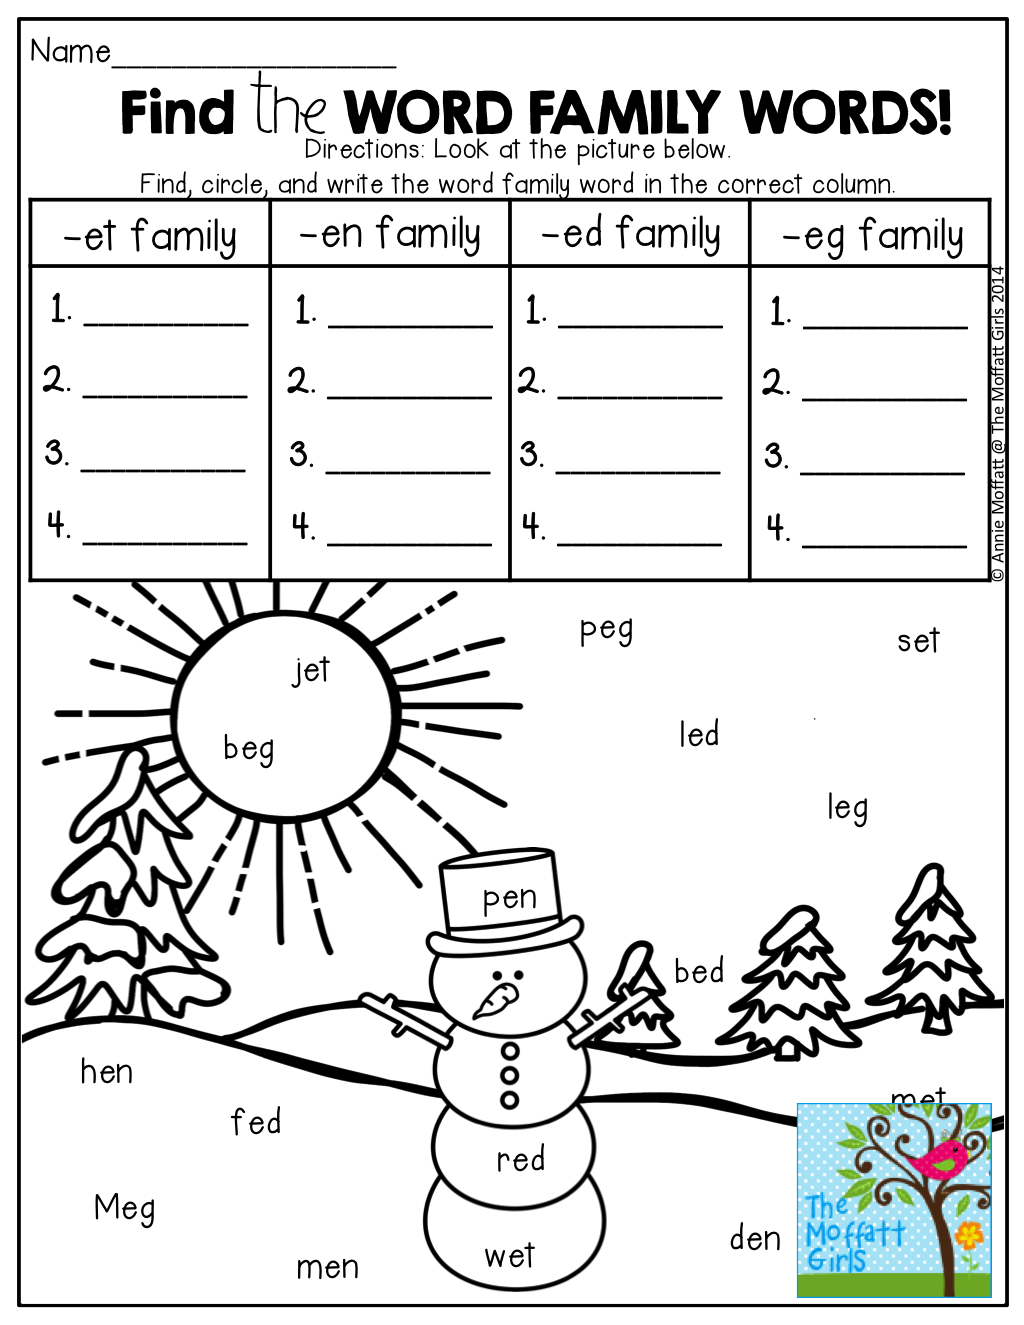 Find The Hidden Word Family Words And Write Them In The Correct Column So Many Fun Printables That Word Families Word Family Activities Kindergarten Reading